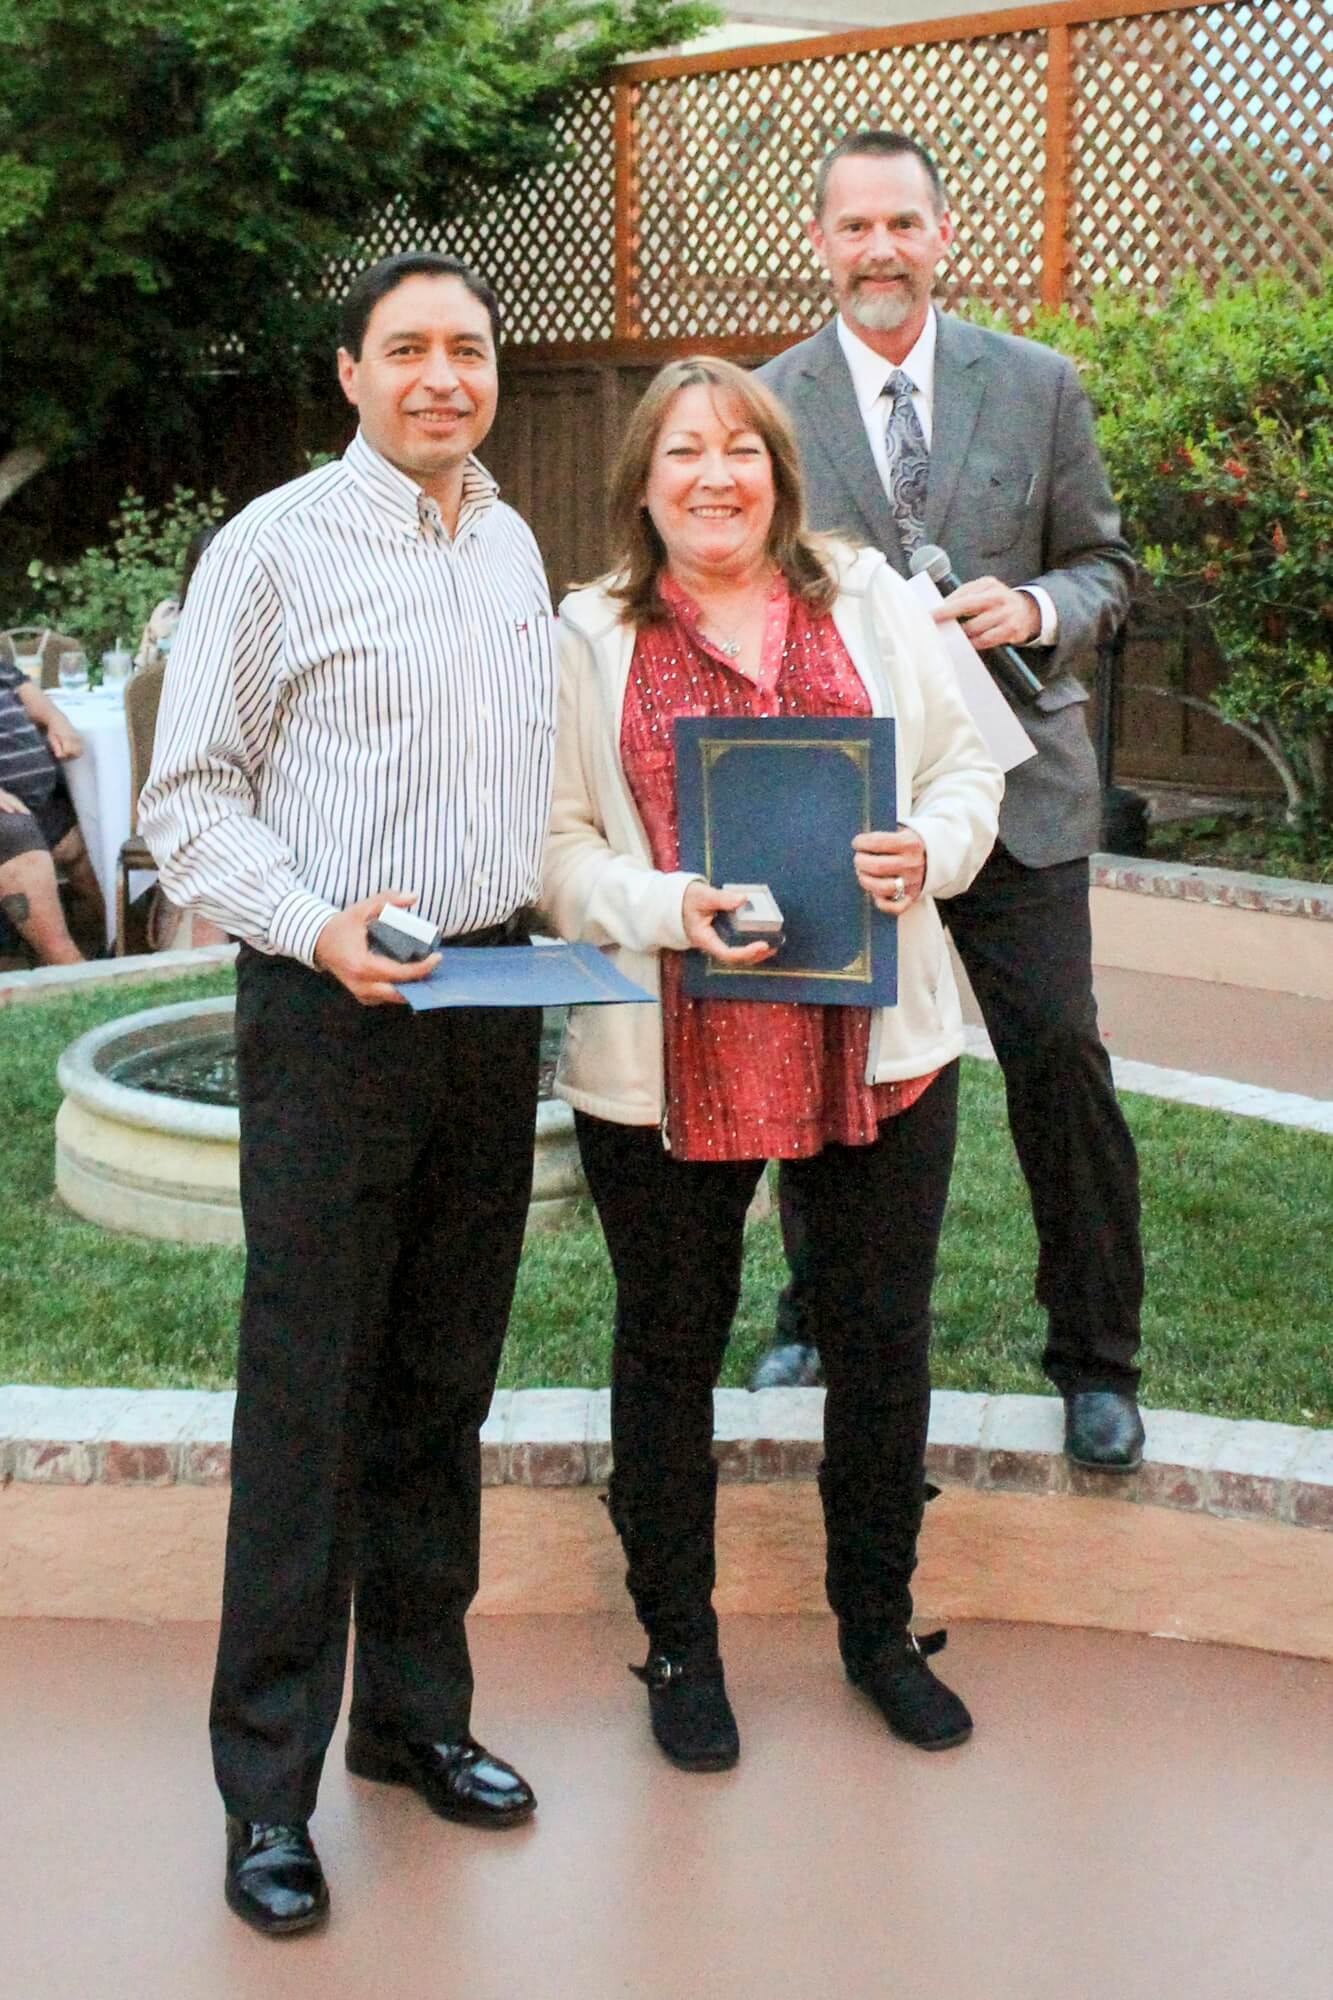 Dr. Kevin Flanigan presented 15-year pins of service to Oscar Morales and Linda Little.